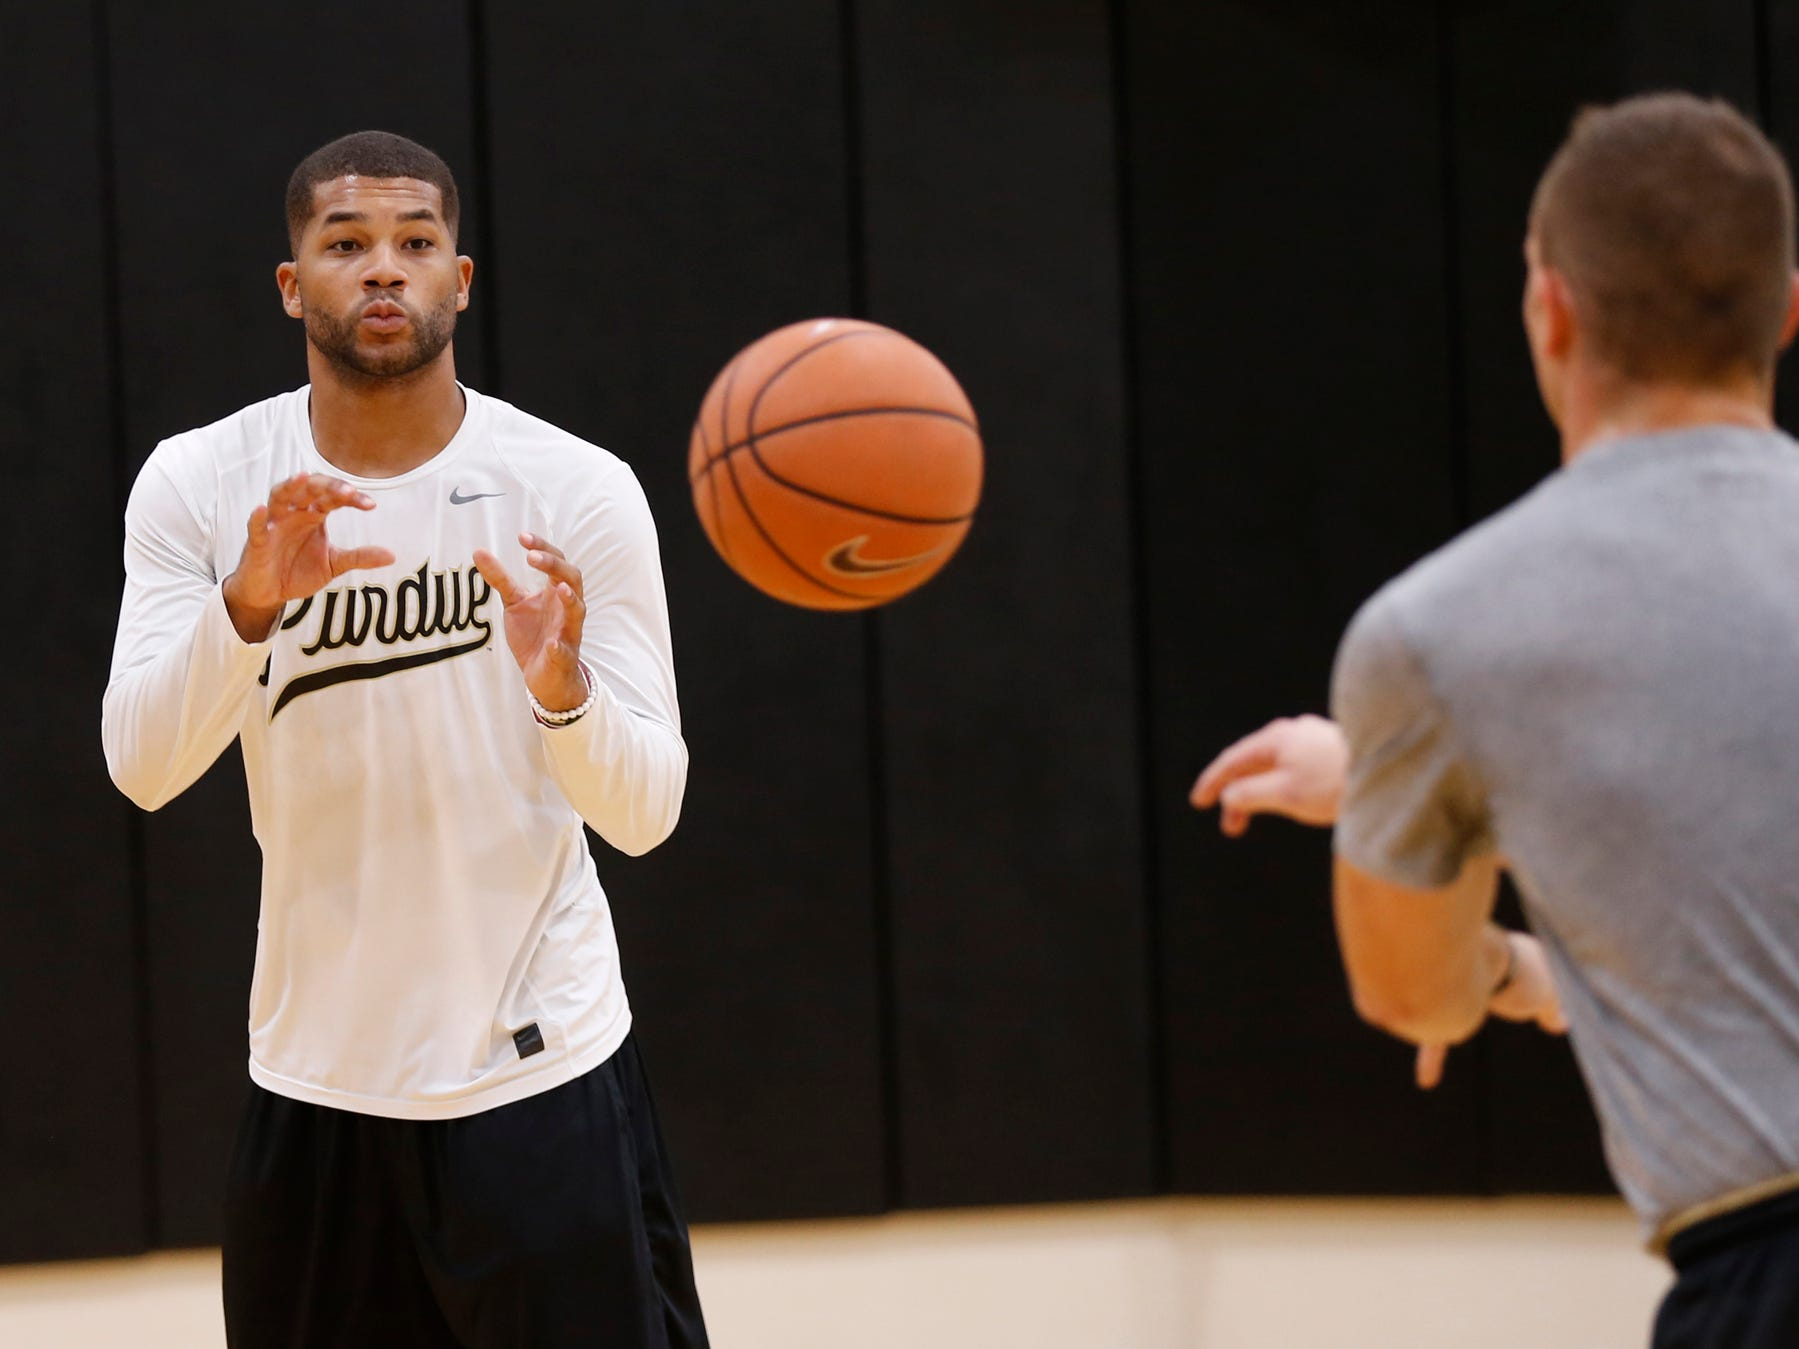 Graduate student manager Joey Brooks catches a pass from fellow graduate student manager D. J. Byrd during the first official practice of the season for Purdue men's basketball Tuesday, September 25, 2018, at Cardinal Court in Mackey Arena.